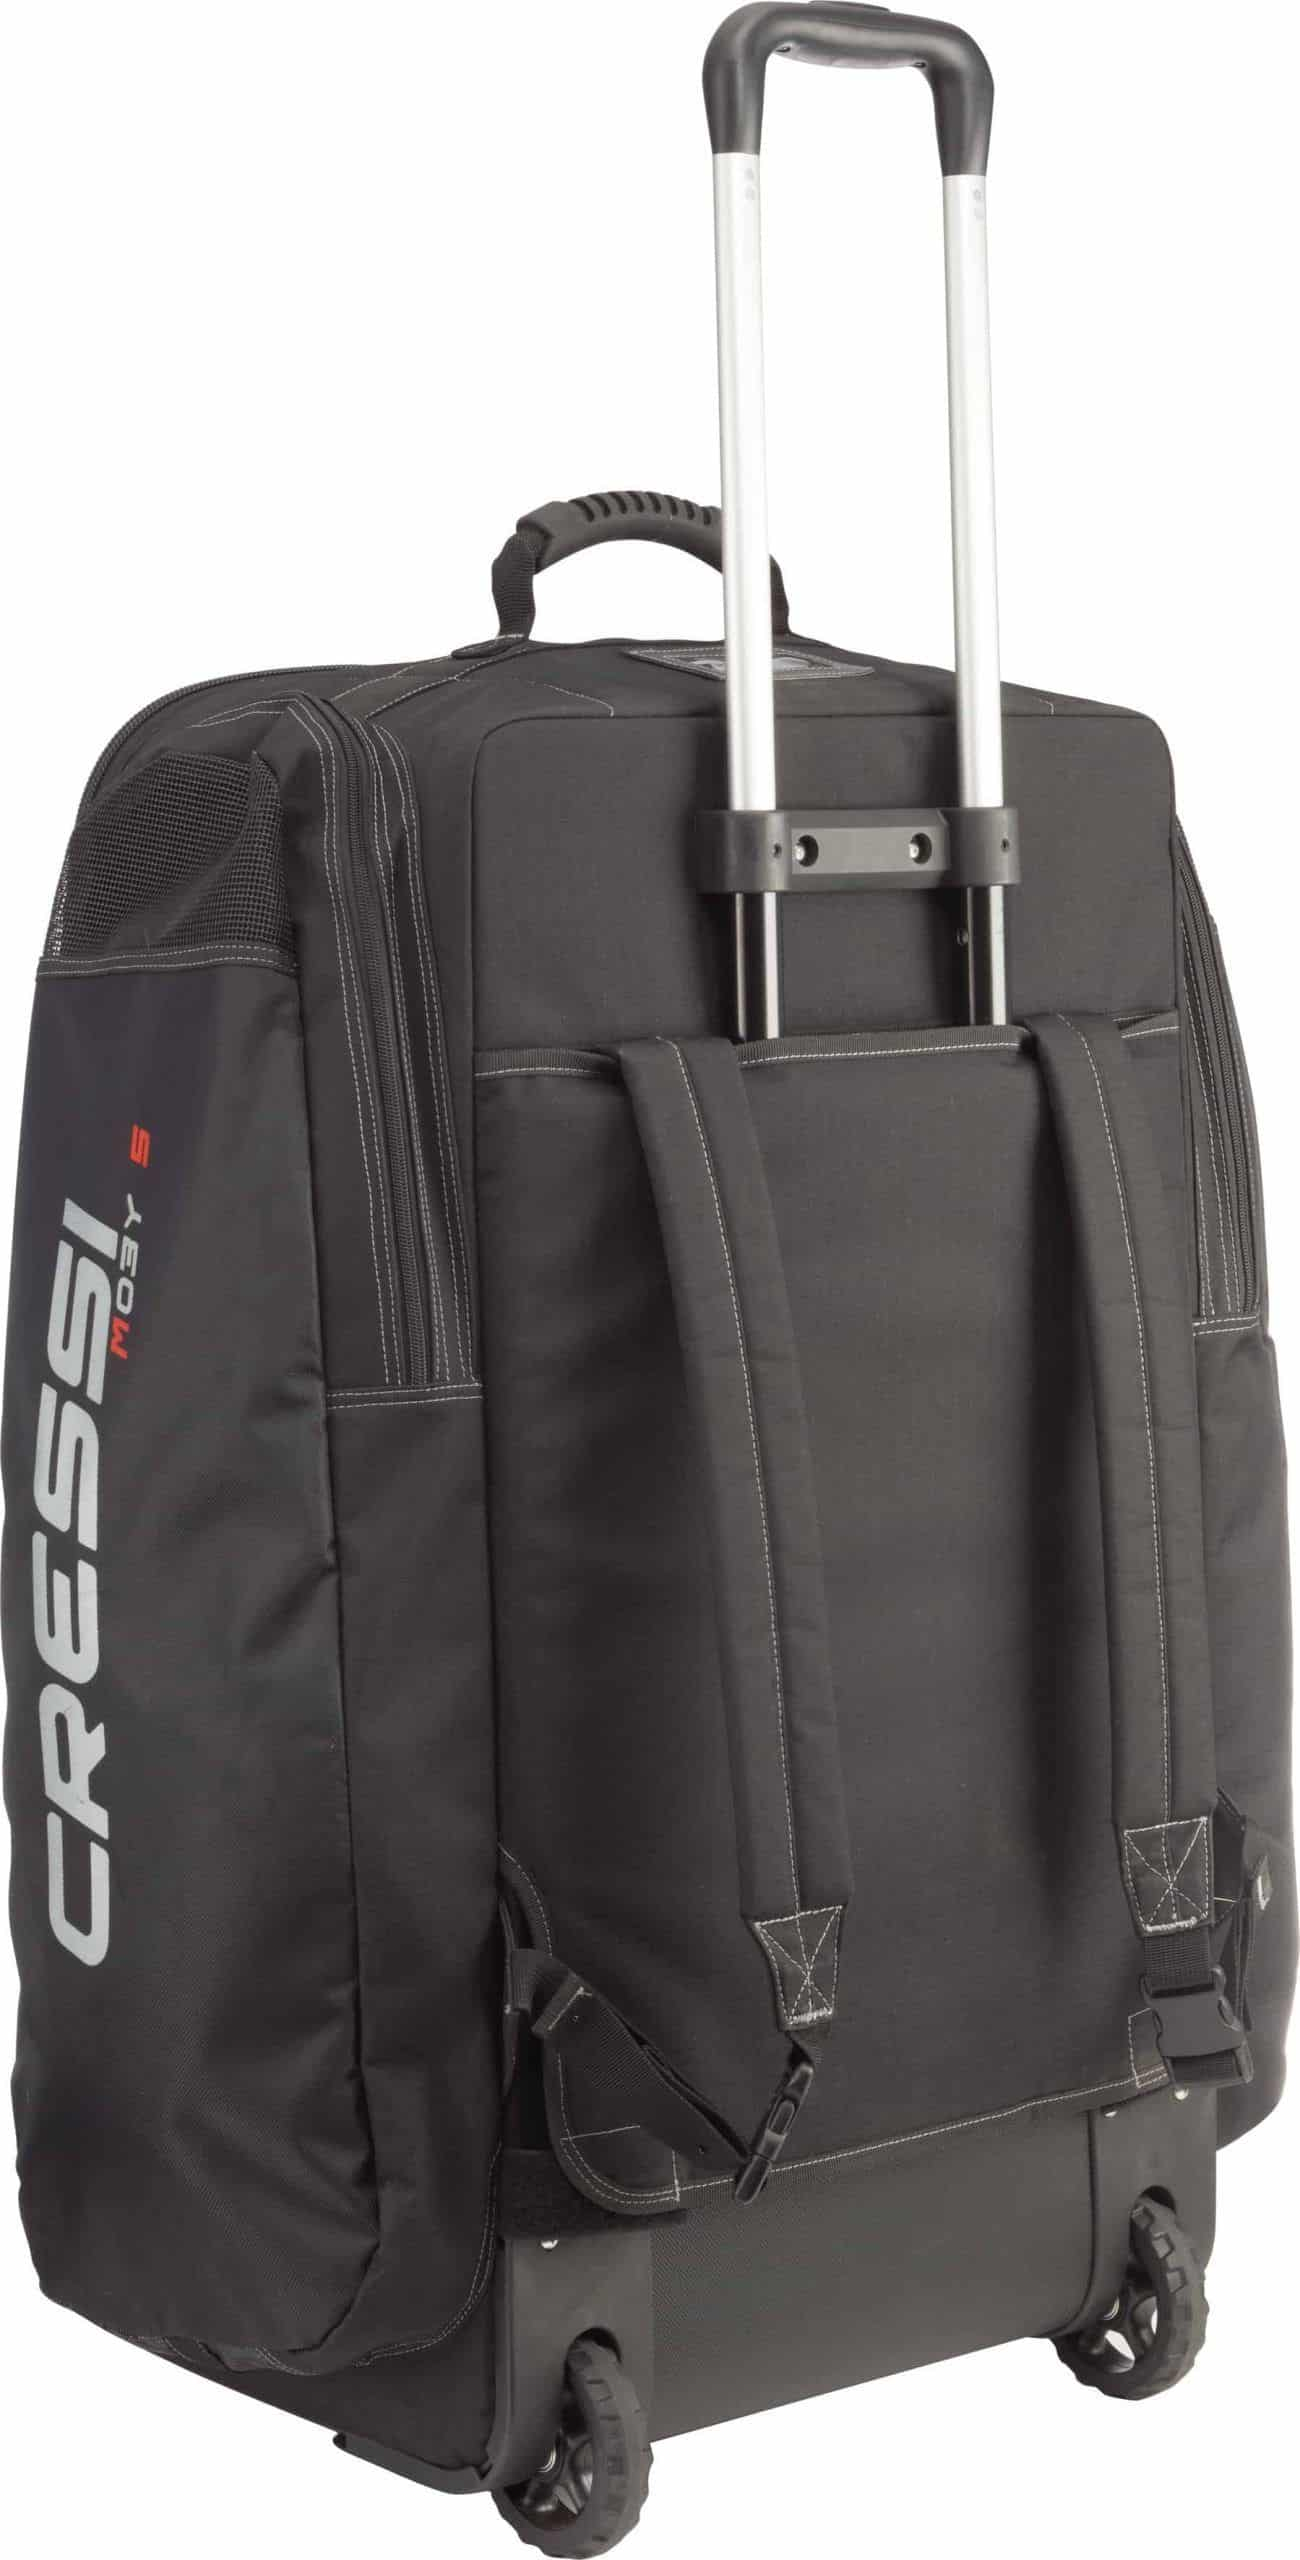 Cressi Scuba Diving Bag with Wheels 1